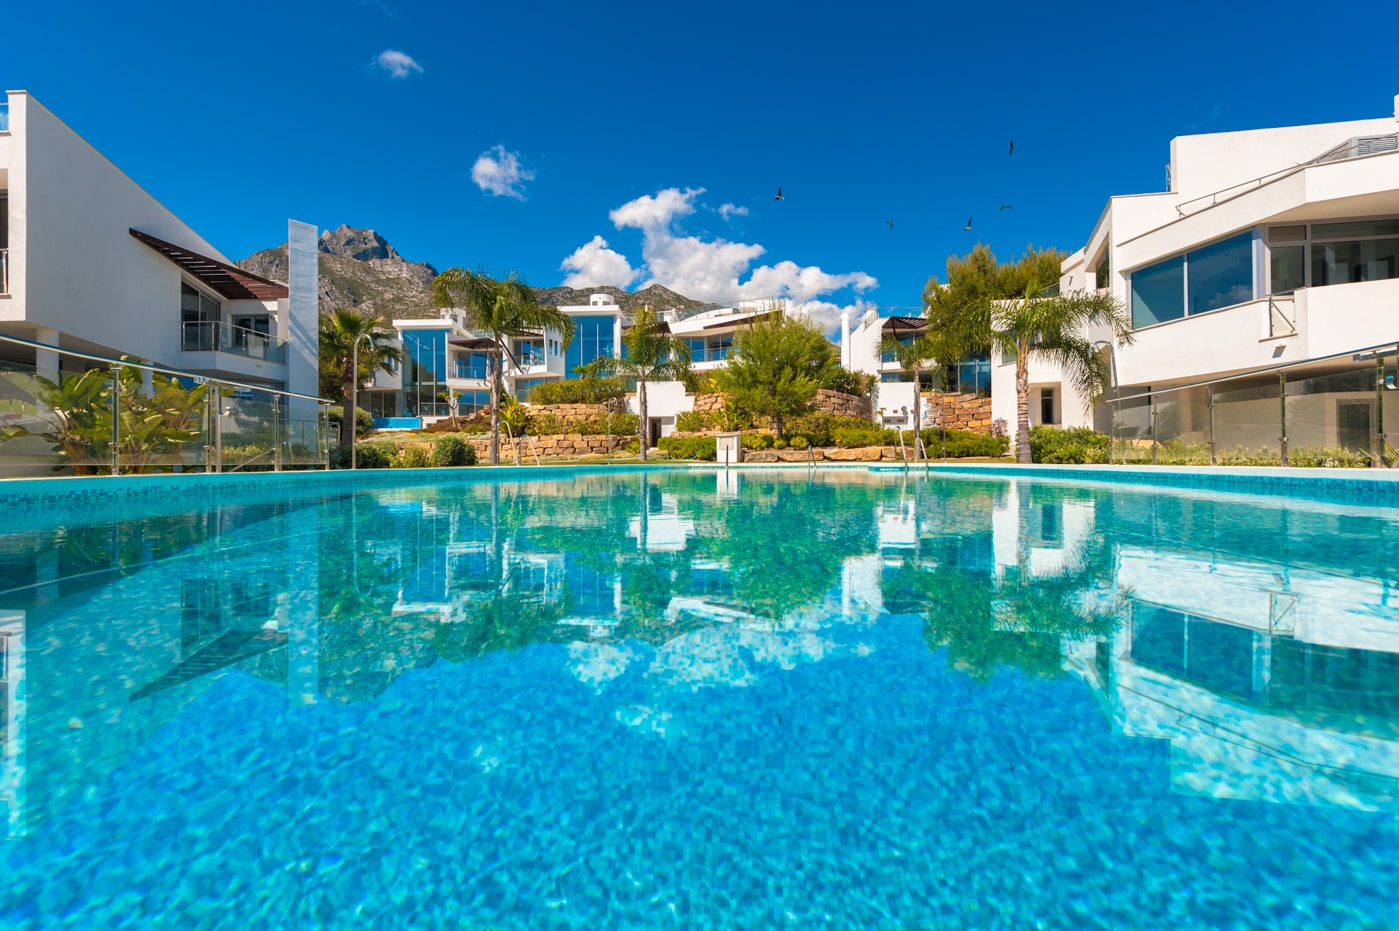 spanish villa with an infinity pool over looking the meditaranean sea surrounded by sun loungers on wooden decking